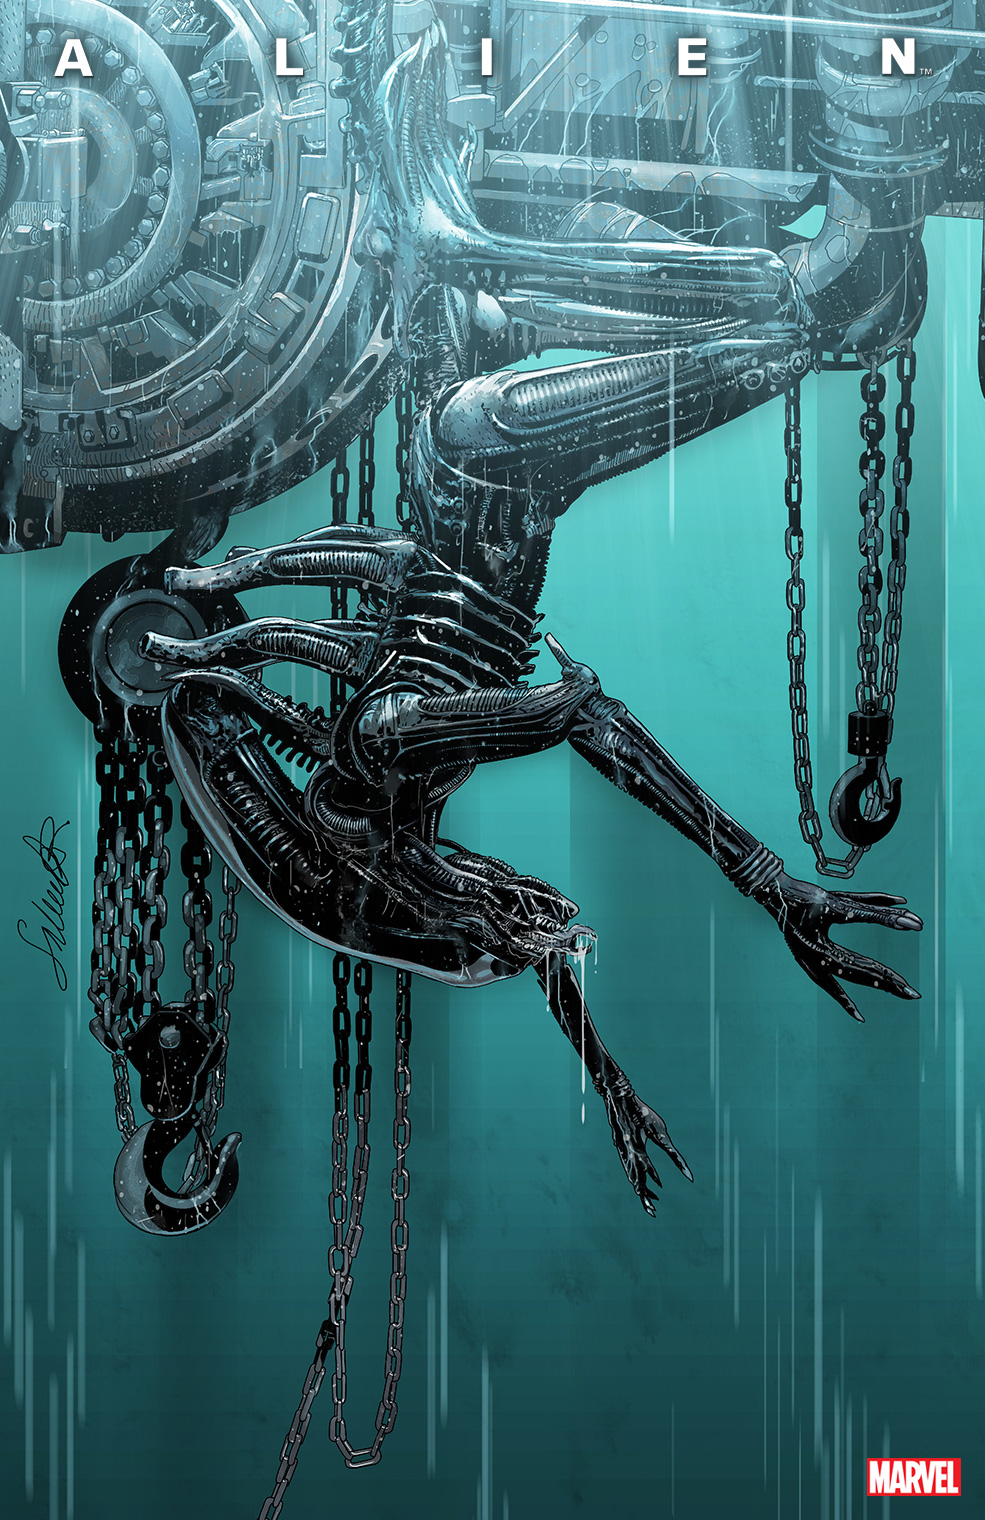 ALIENCOV_SecondPrint ALIEN #1 returns with a second printing